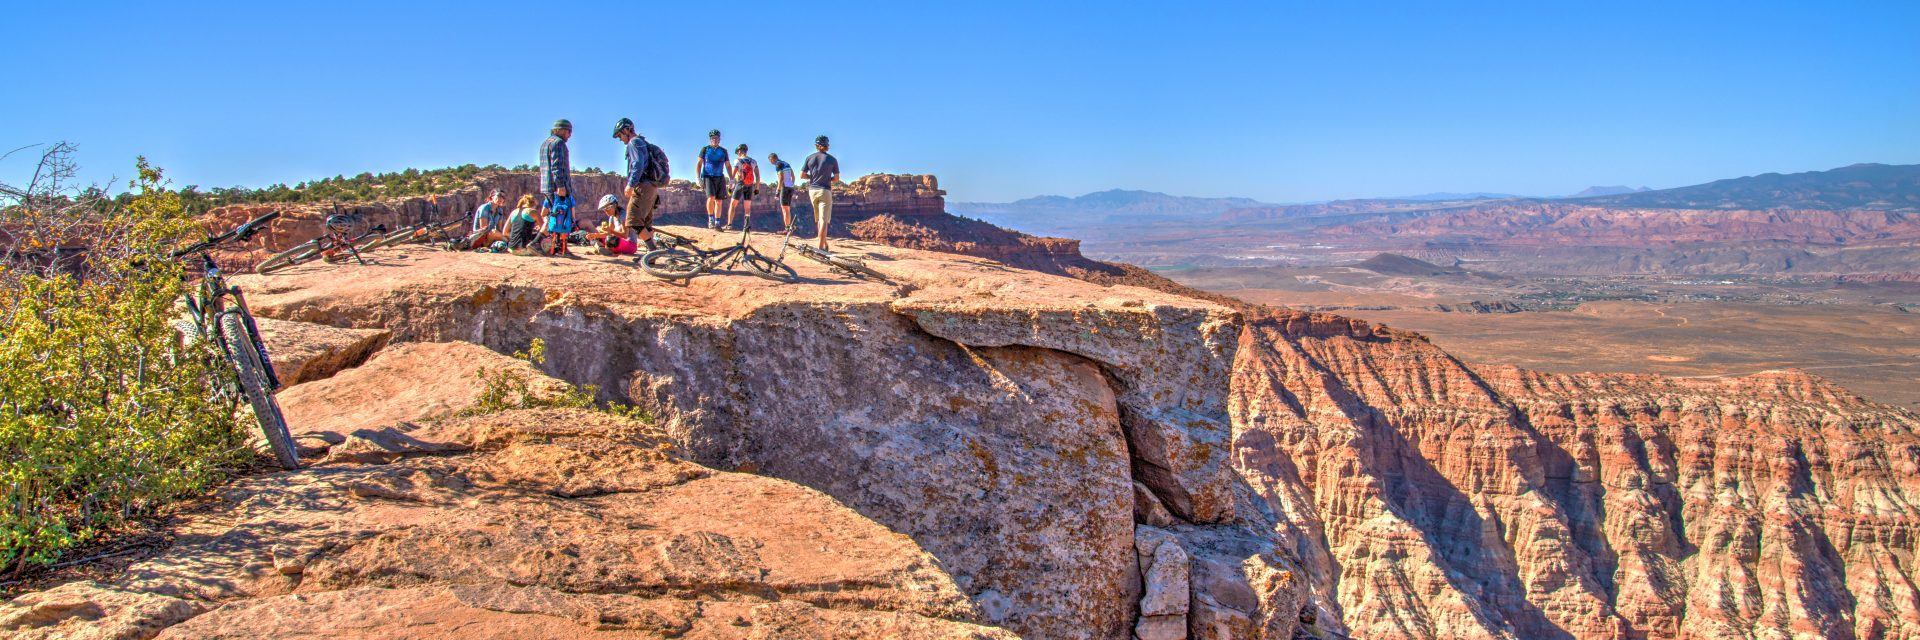 Mountain bike riders regroup at the South Point lunch spot on Gooseberry Mesa during guided tour